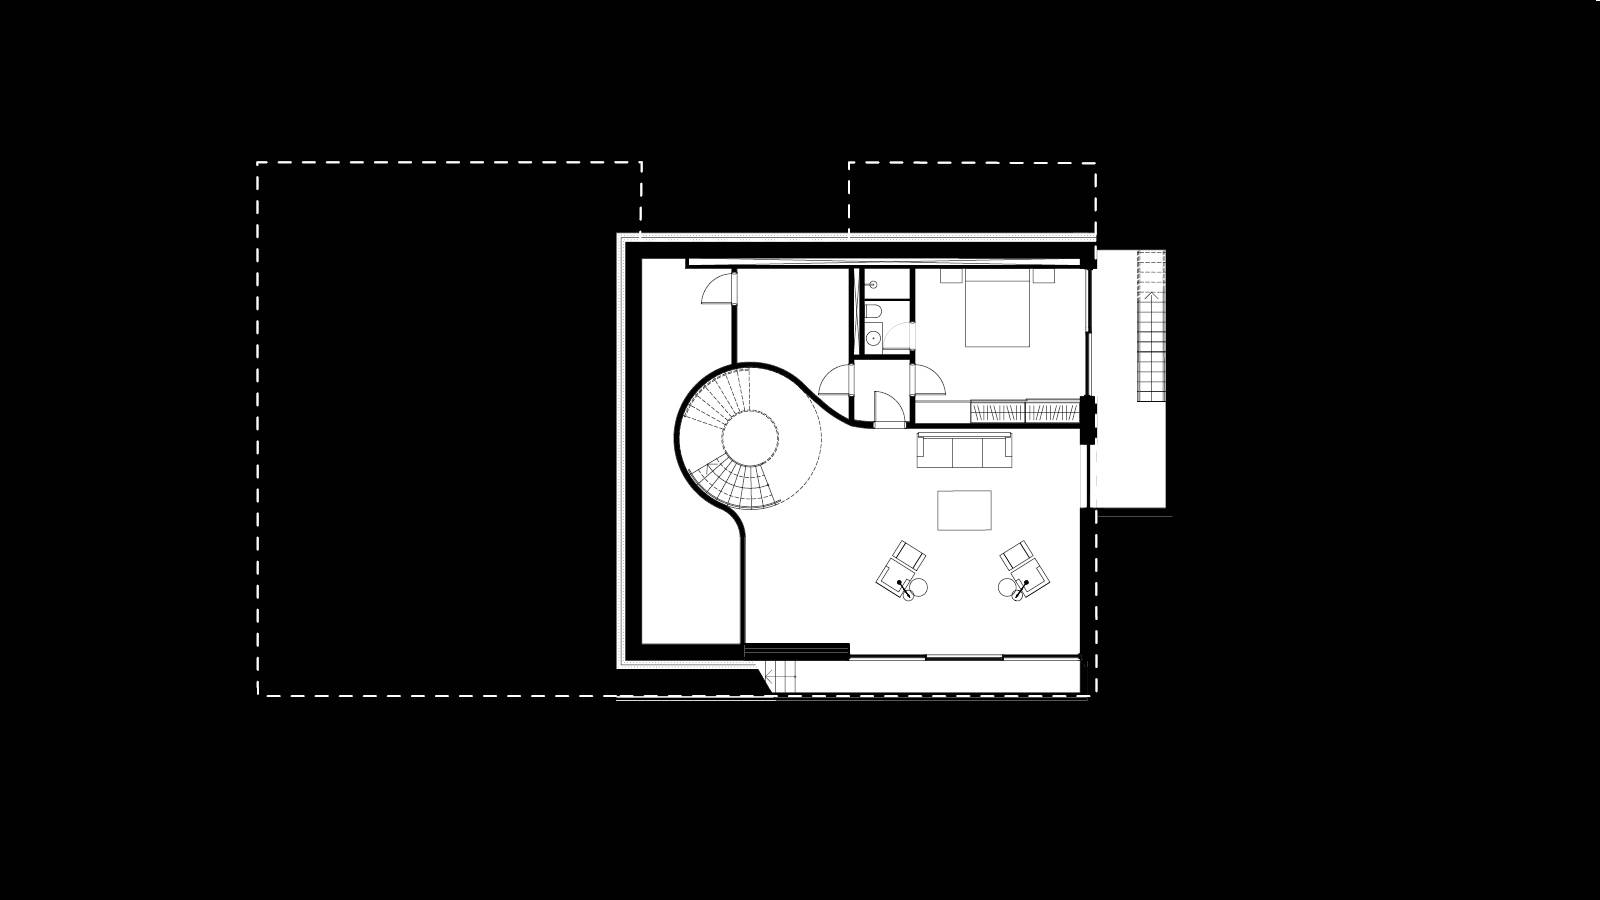 BASEMENT LEVEL PLAN - CPH HOUSE - SPOL Architects